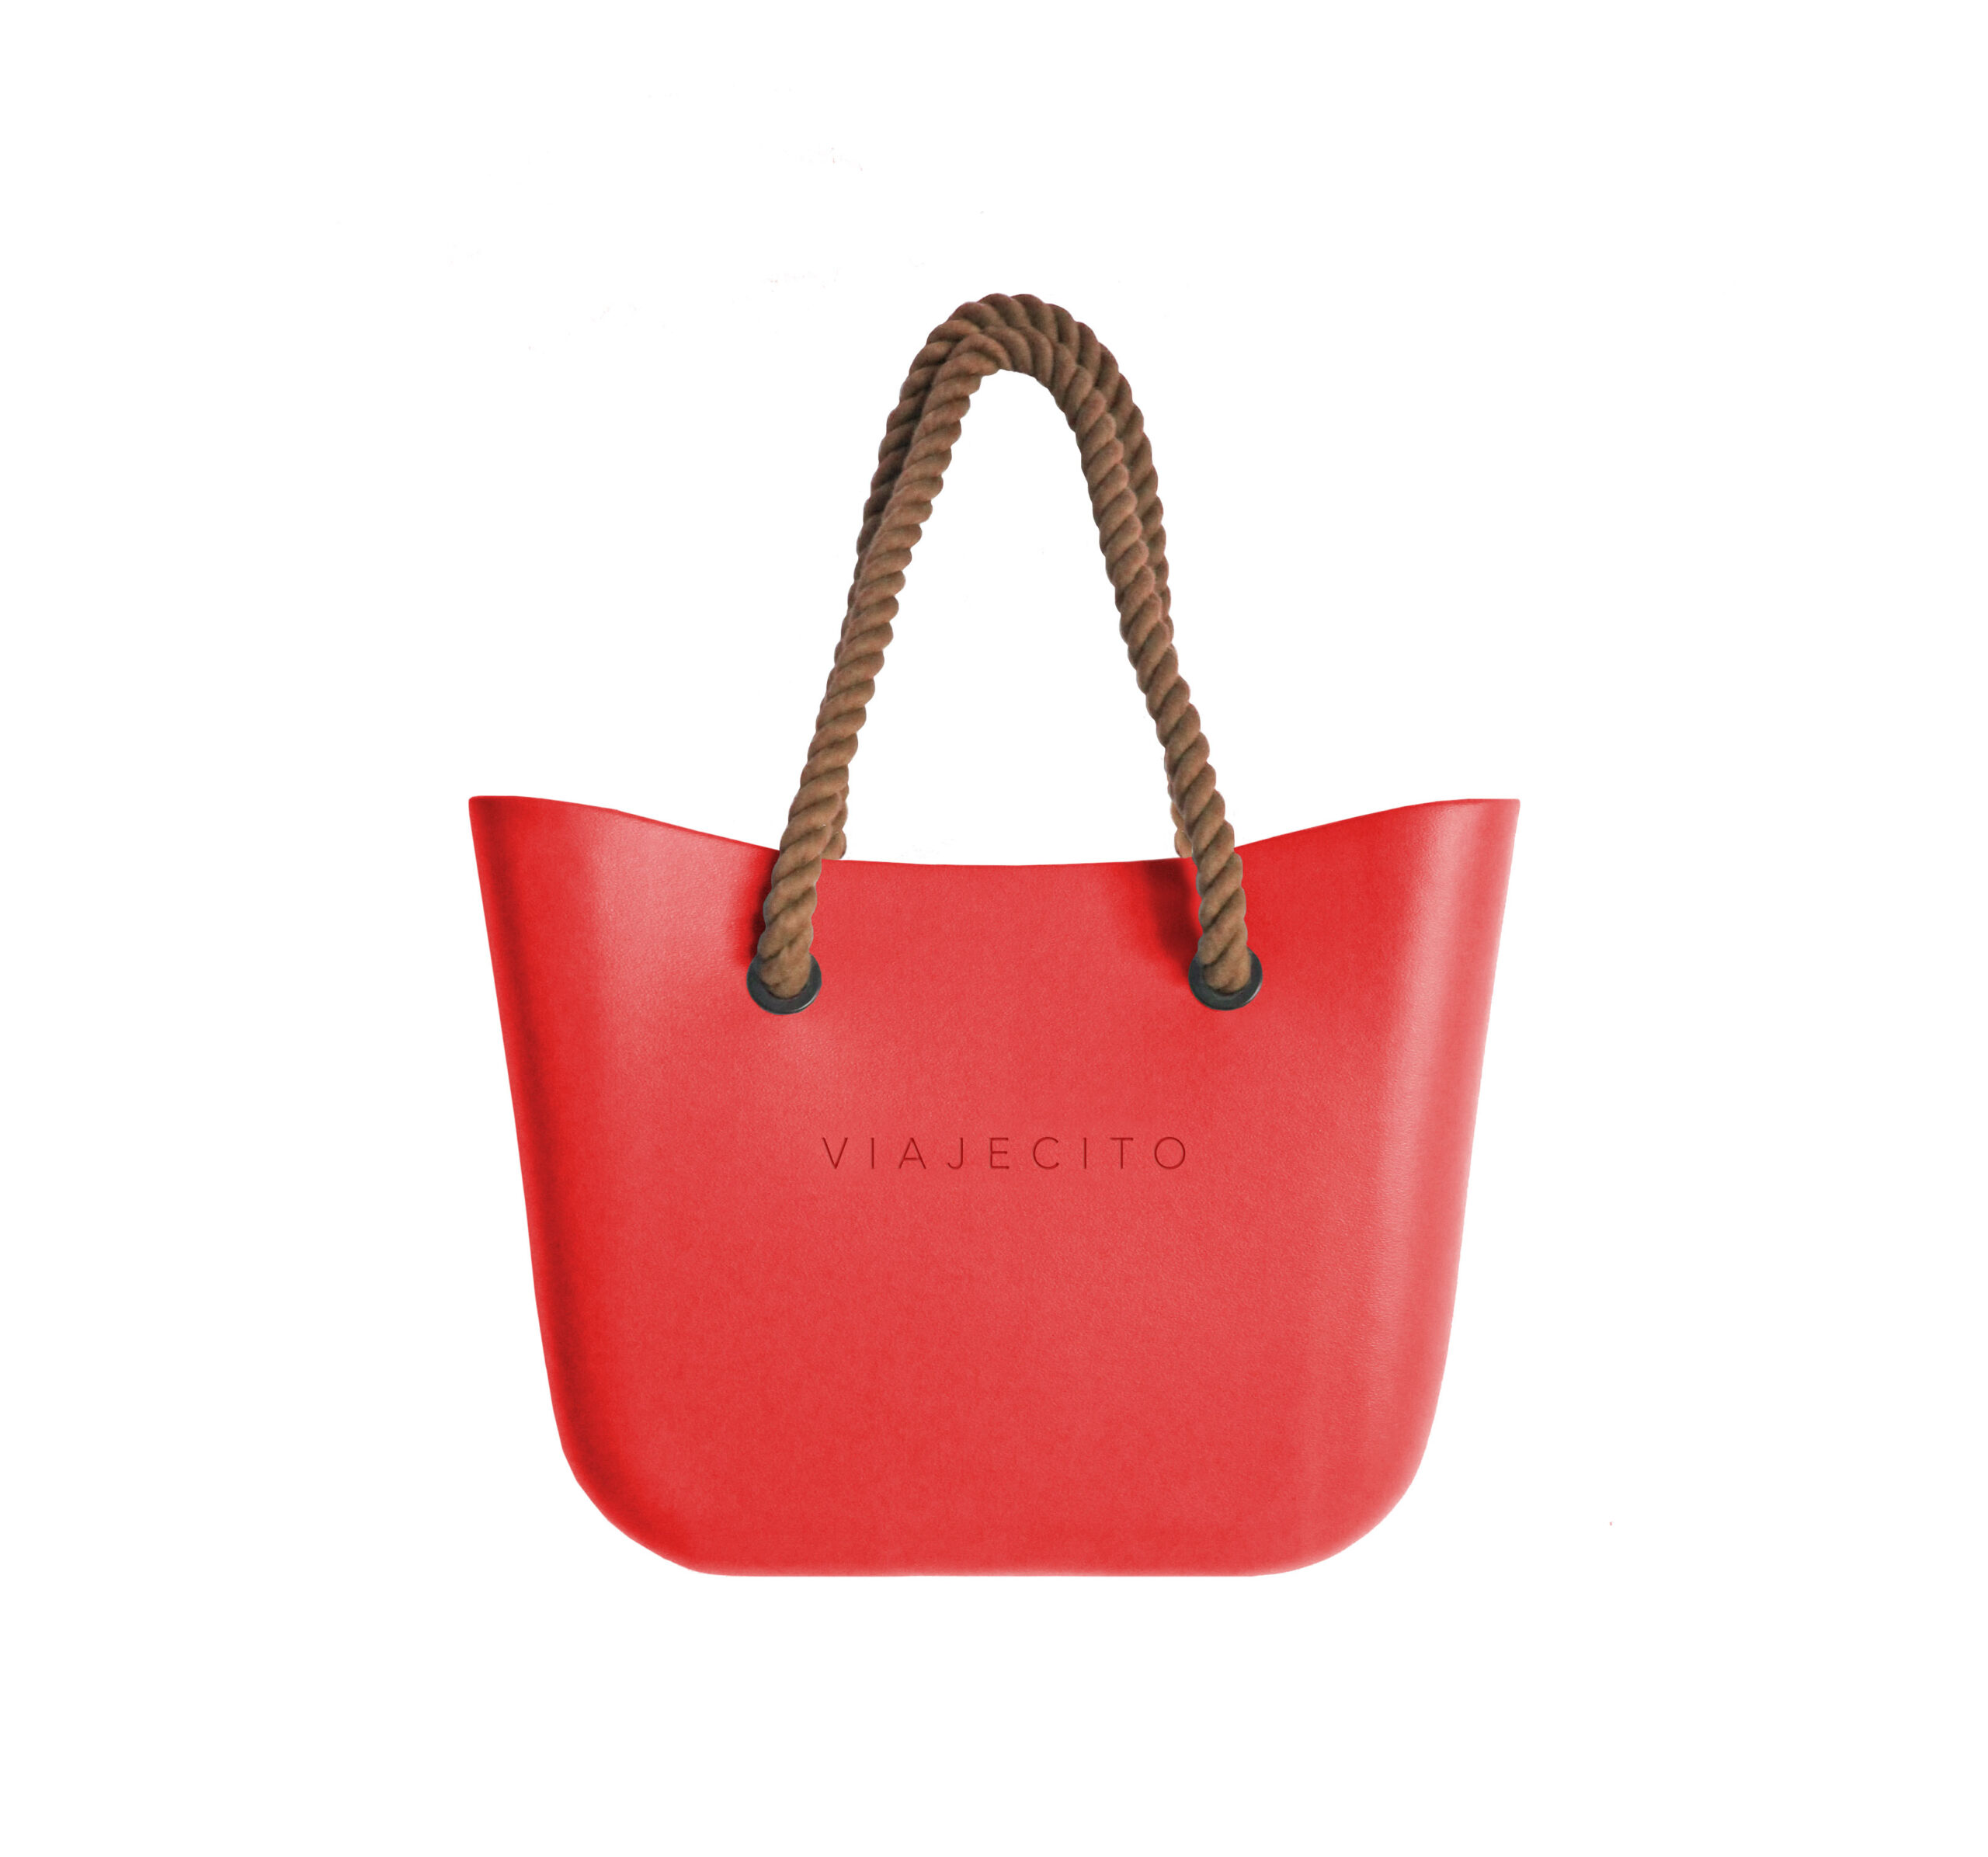 Viajecito red bag